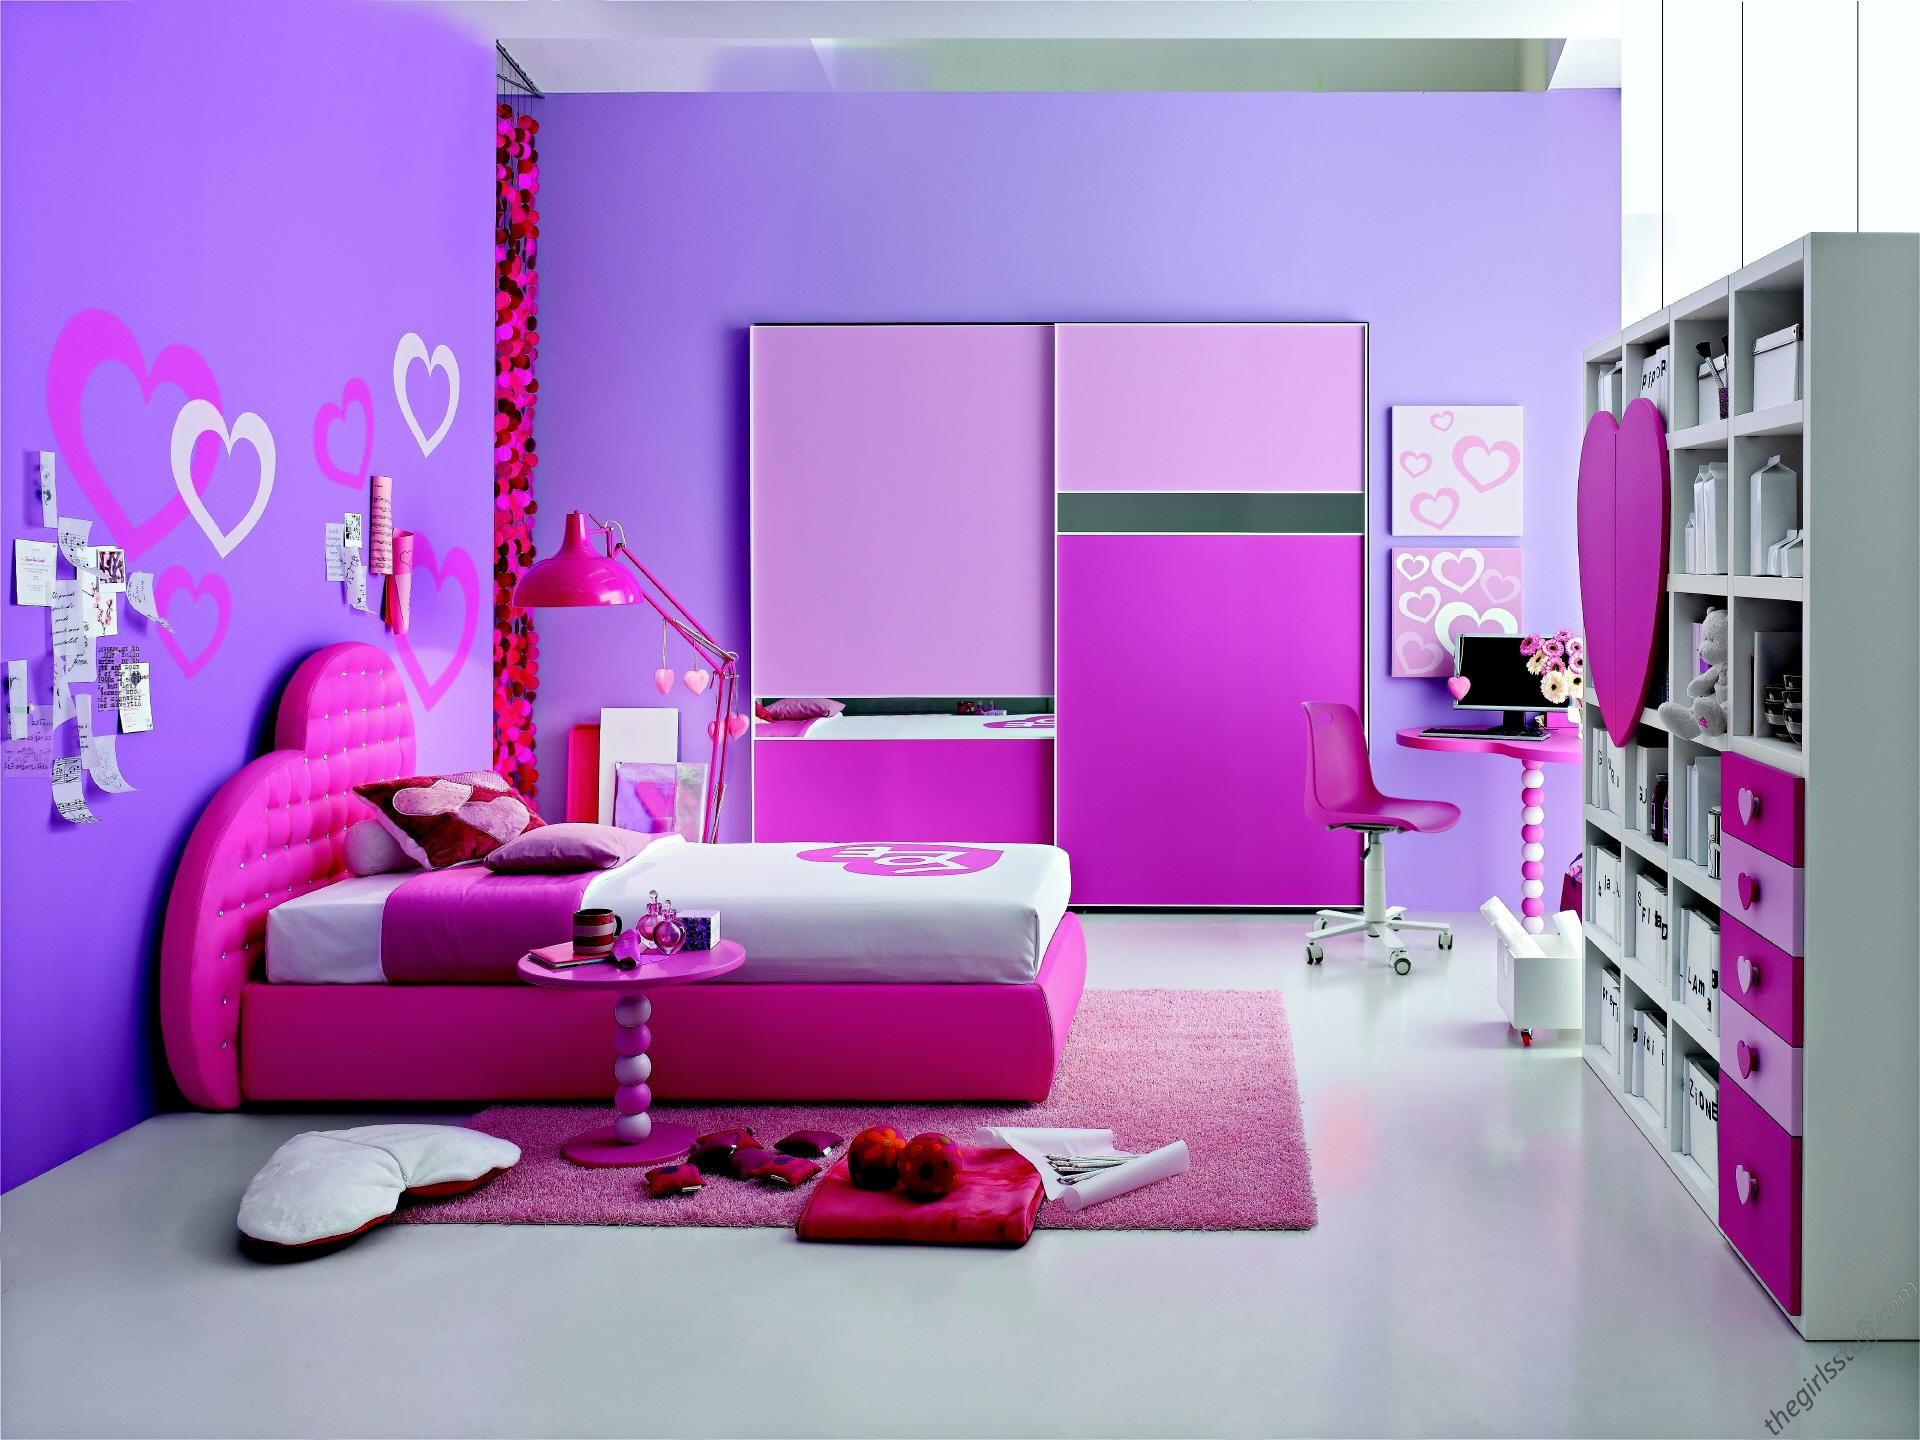 single bed designs. Bedroom Design For Girls With Cool Purple Wall Using Windows And Single Bed Also White Shelves Ideas In Room Designs O